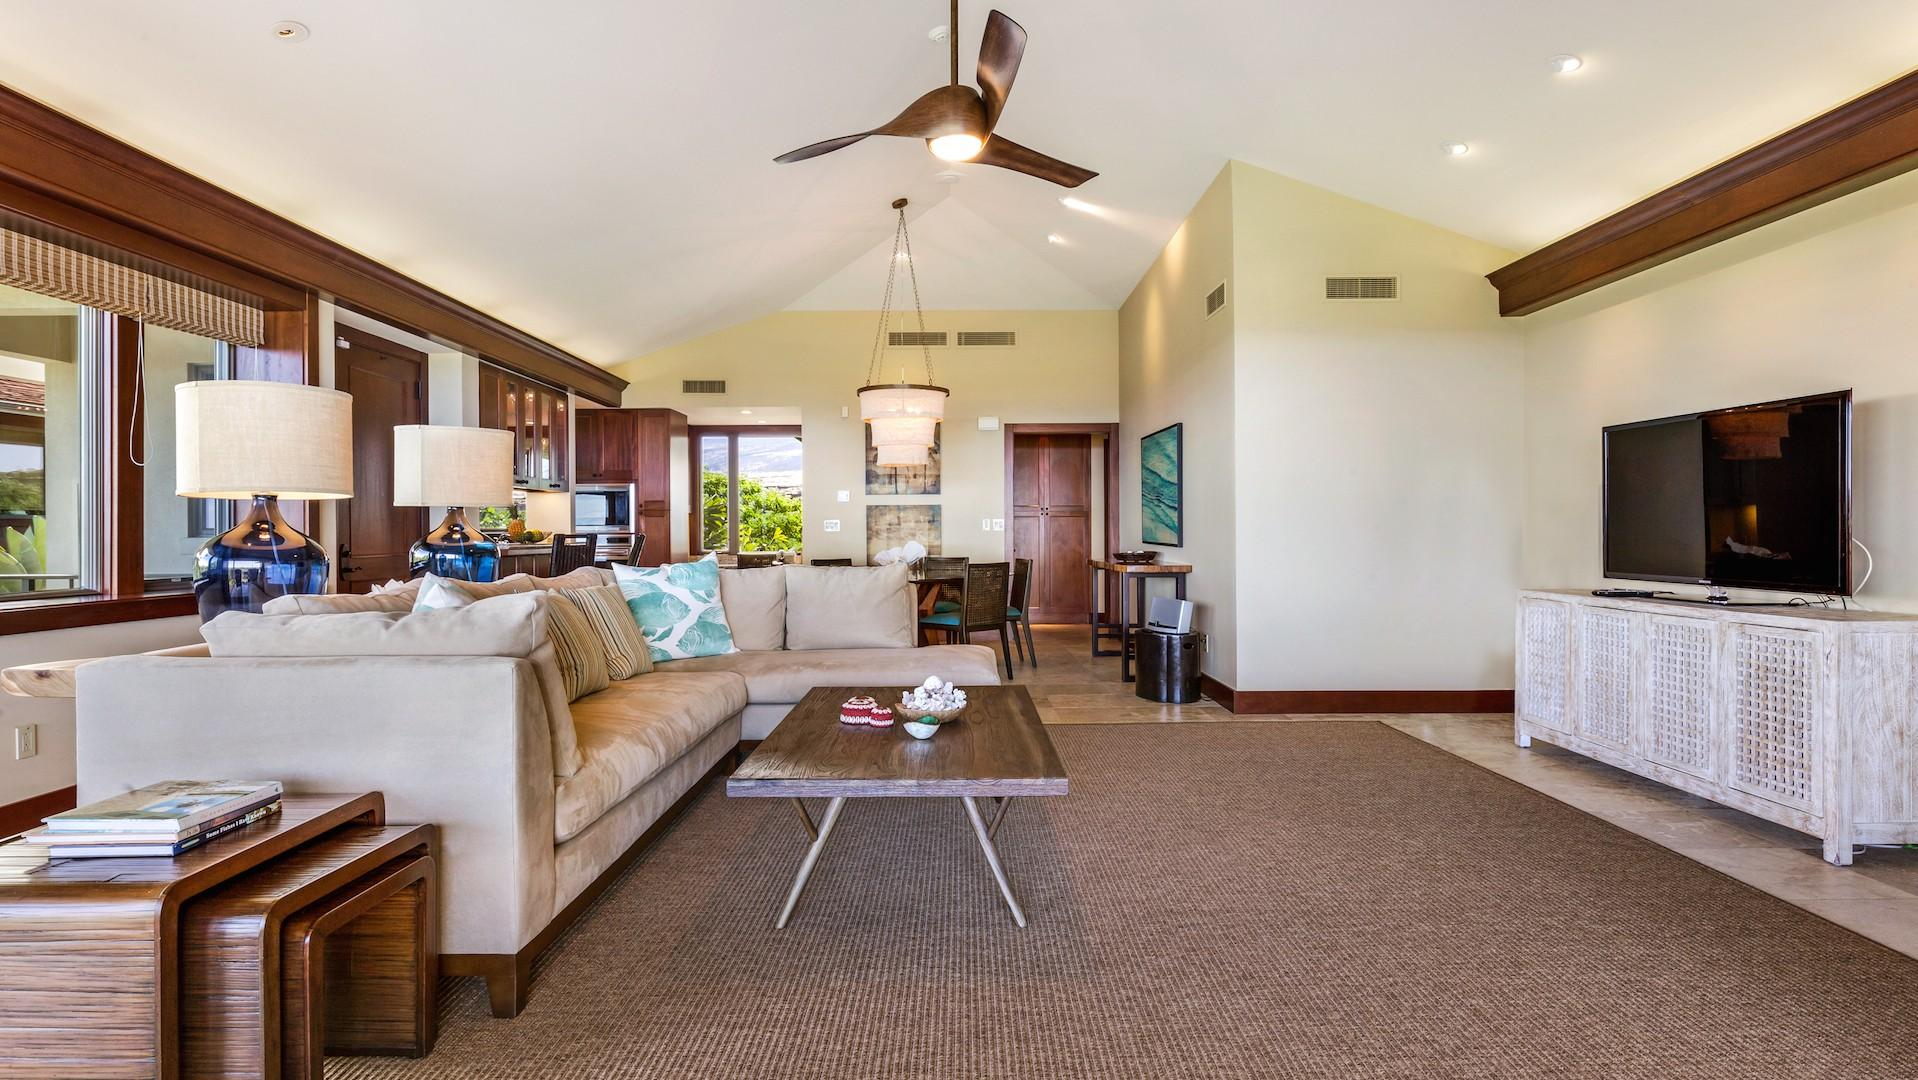 2,430 square feet of living space.